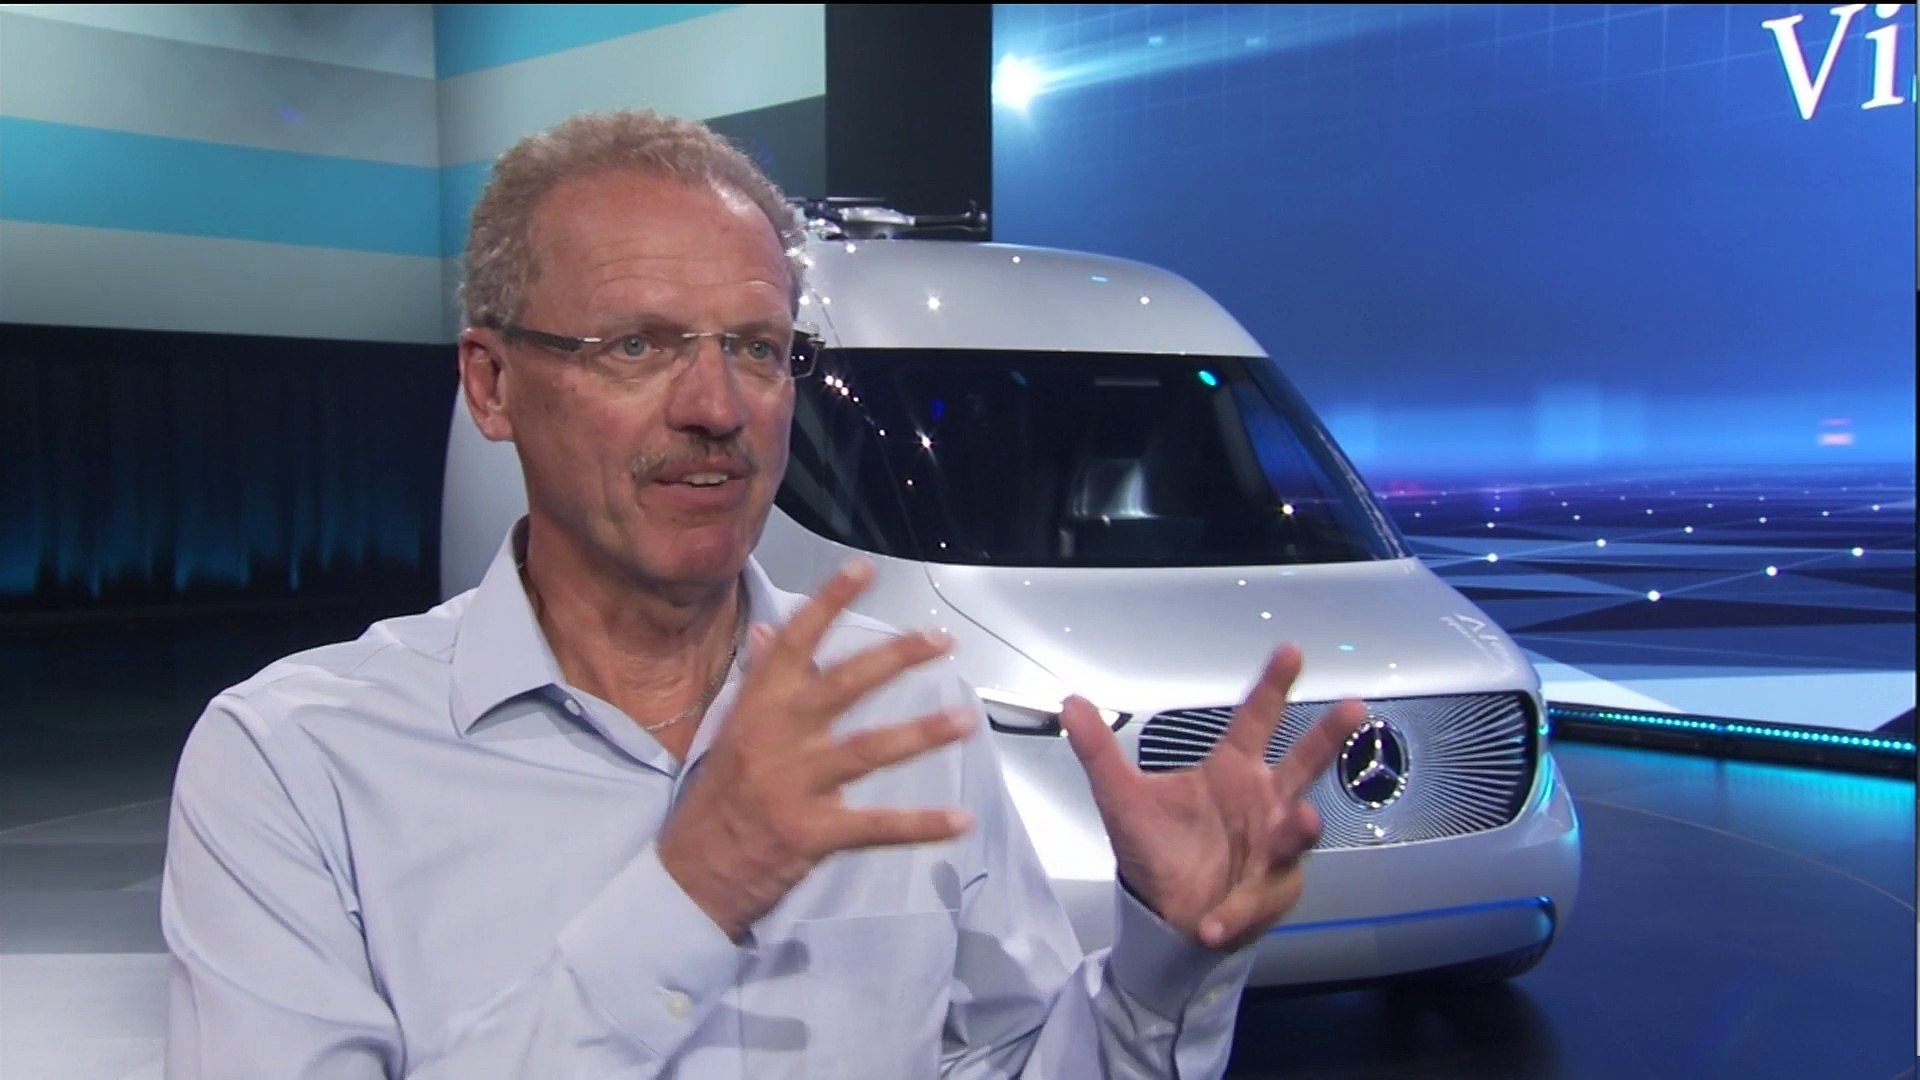 Mercedes-Benz Reveal Vision Van - Volker Mornhinweg, Head of Mercedes-Benz Vans